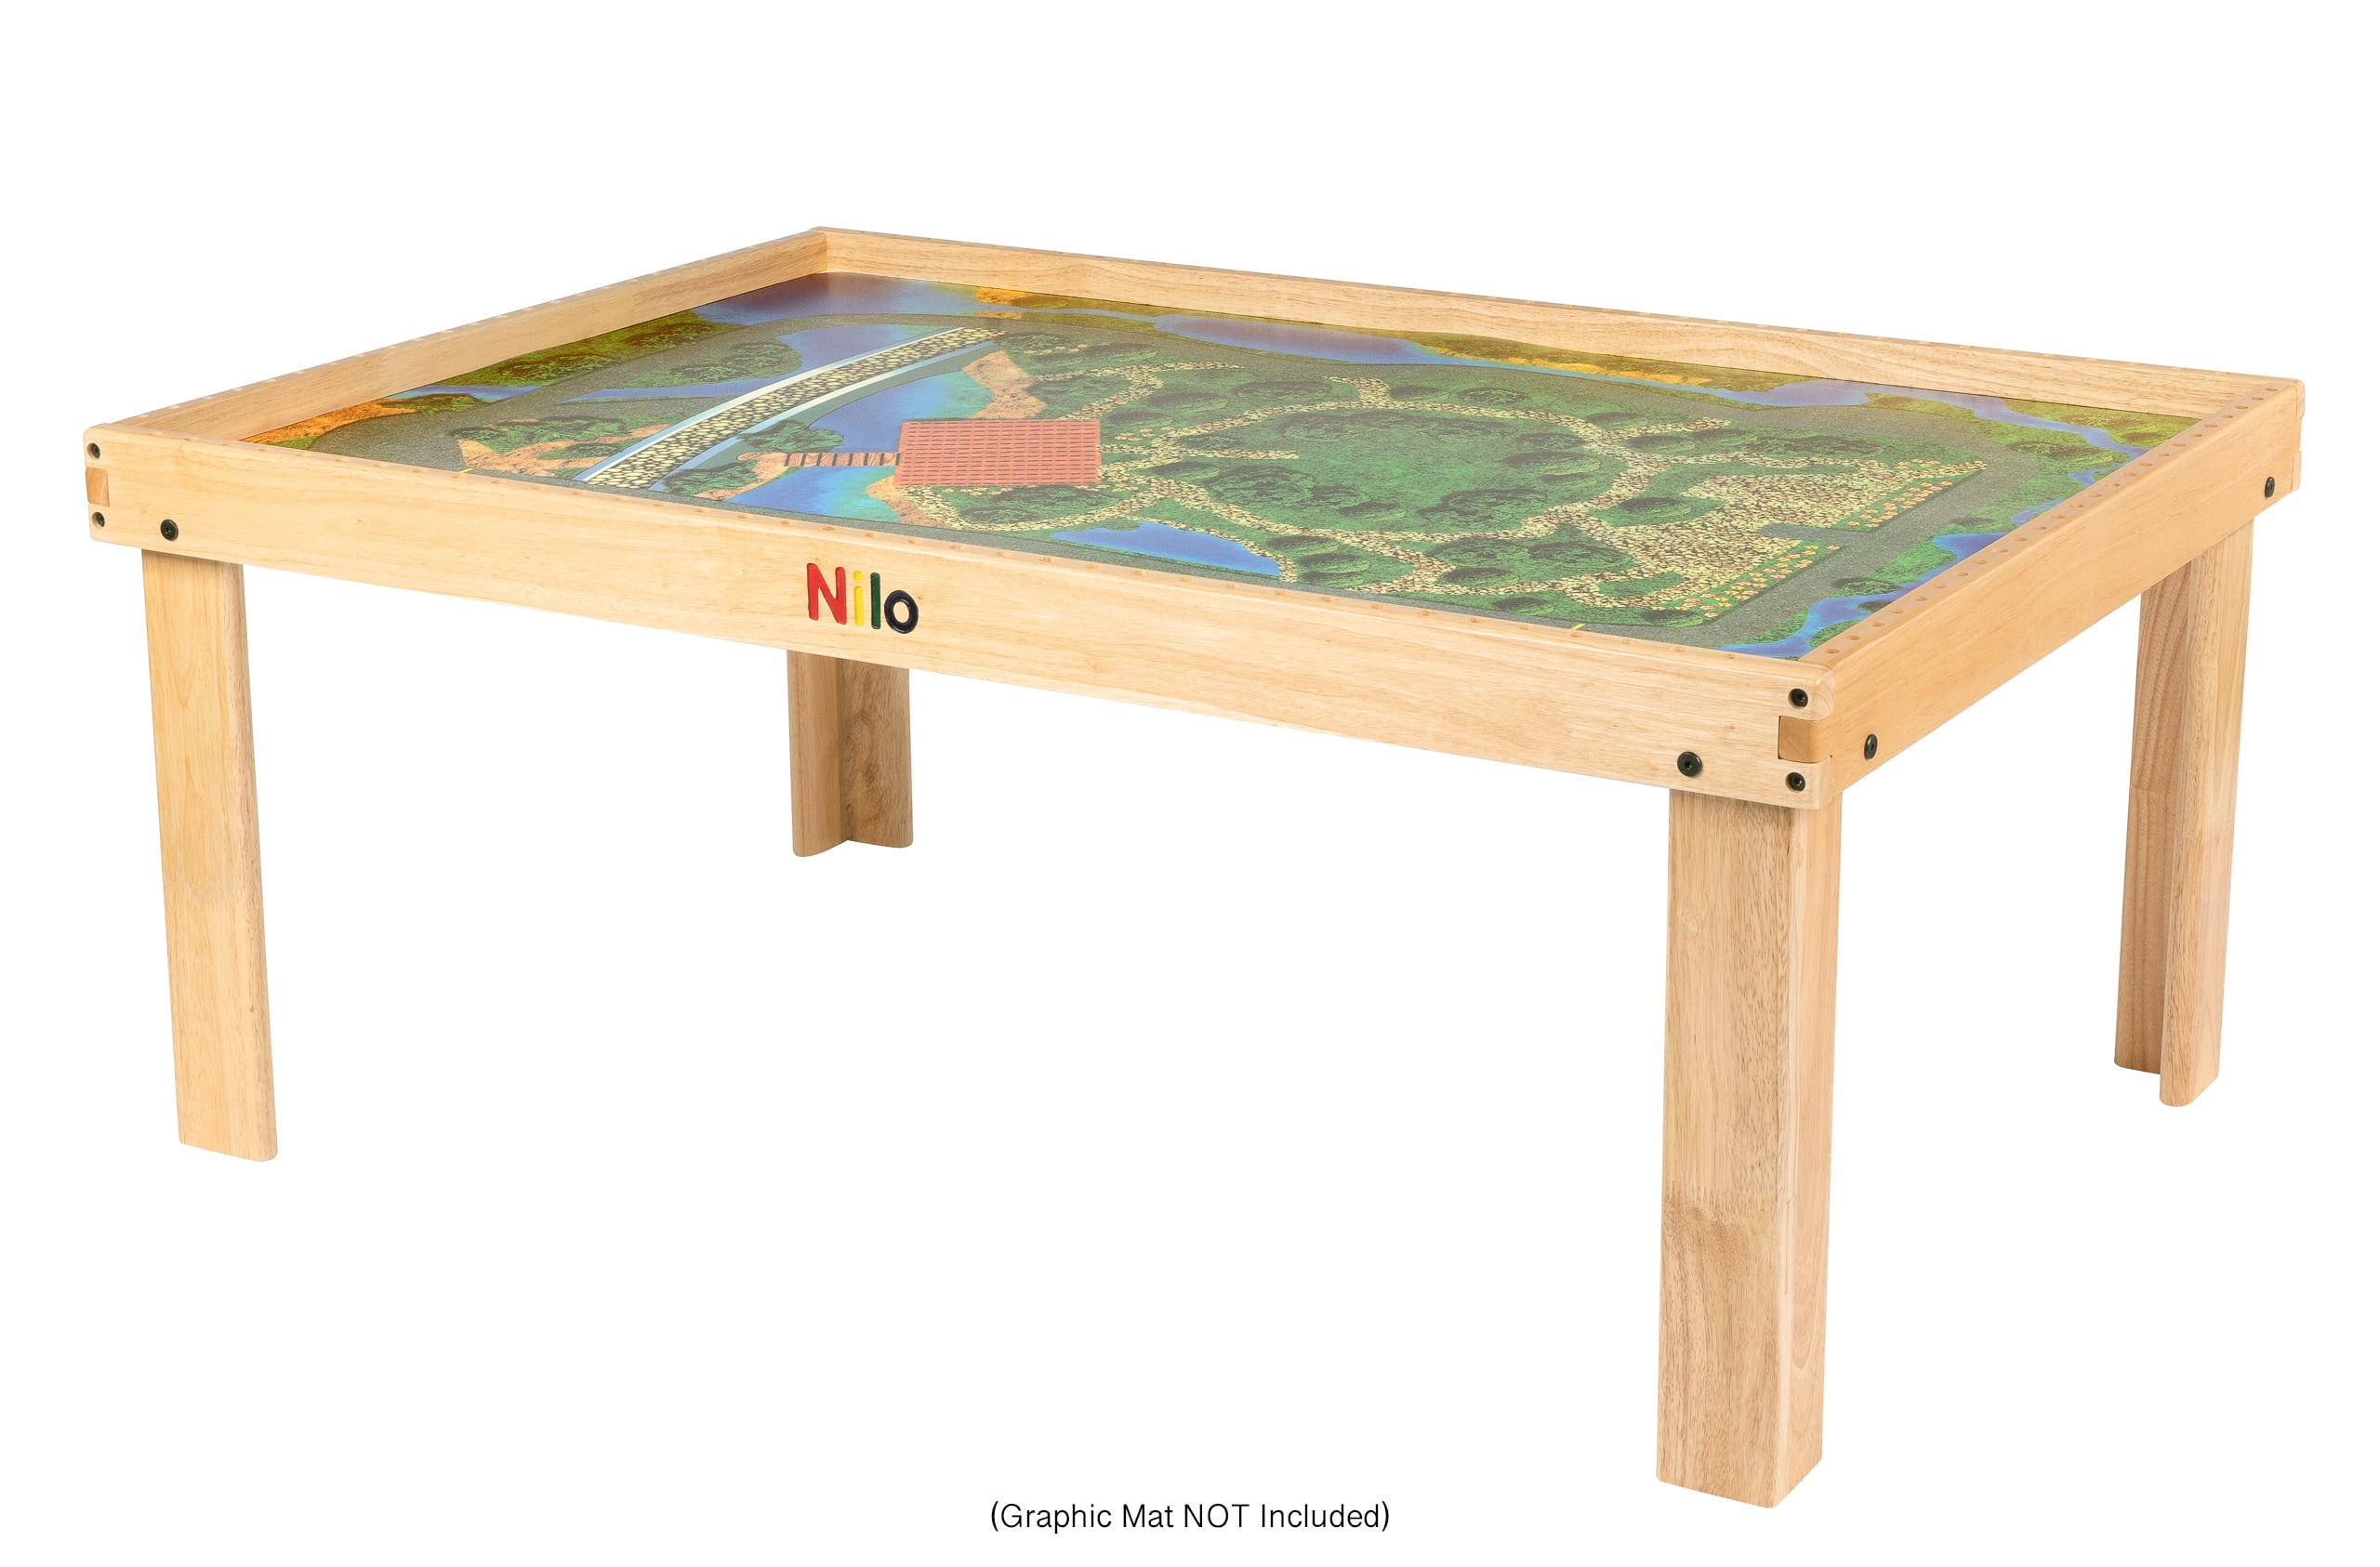 Large Activity Table with graphic play mat